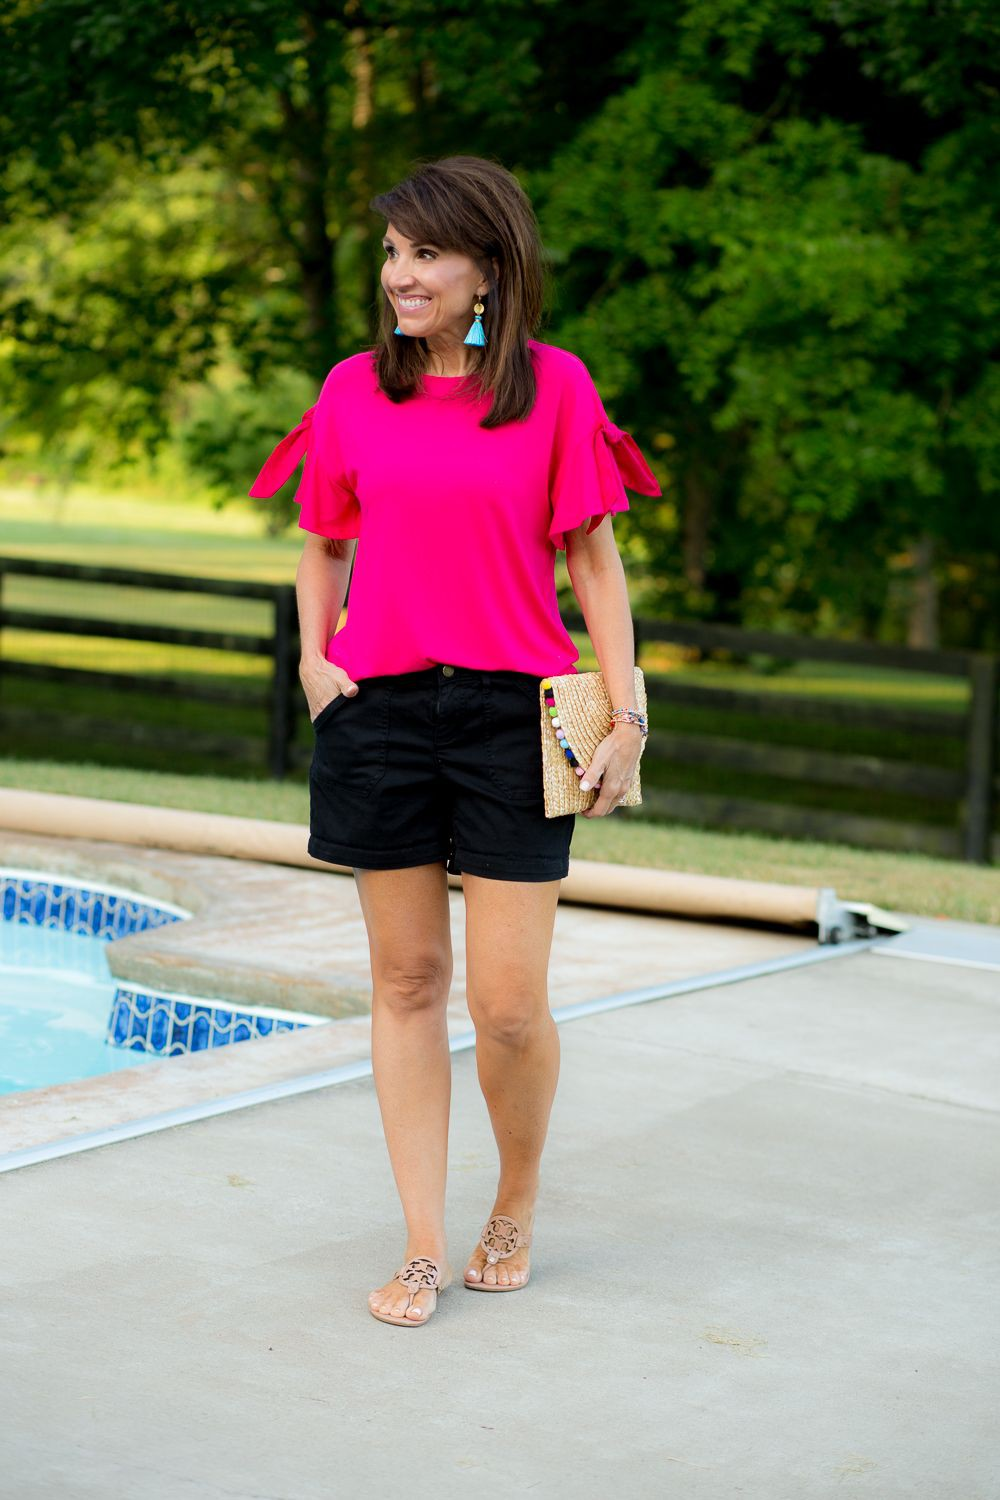 Outfits With Black Shorts, Platform shoe